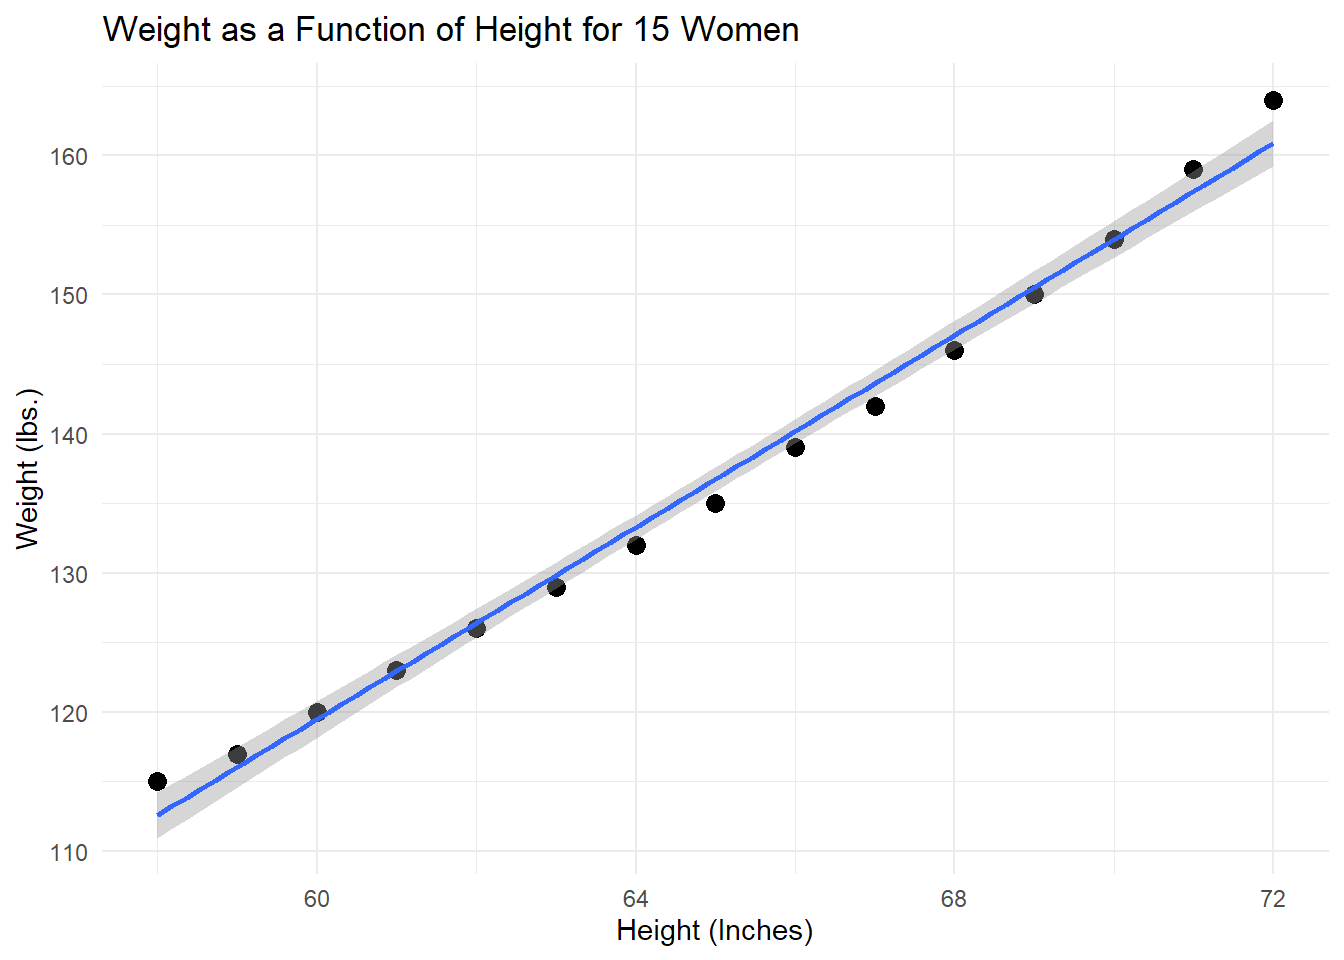 Figure 2: Weight as a function of height for a subset of 15 women. Blue line represents linear relationship with 95% confidence interval (grey bands.